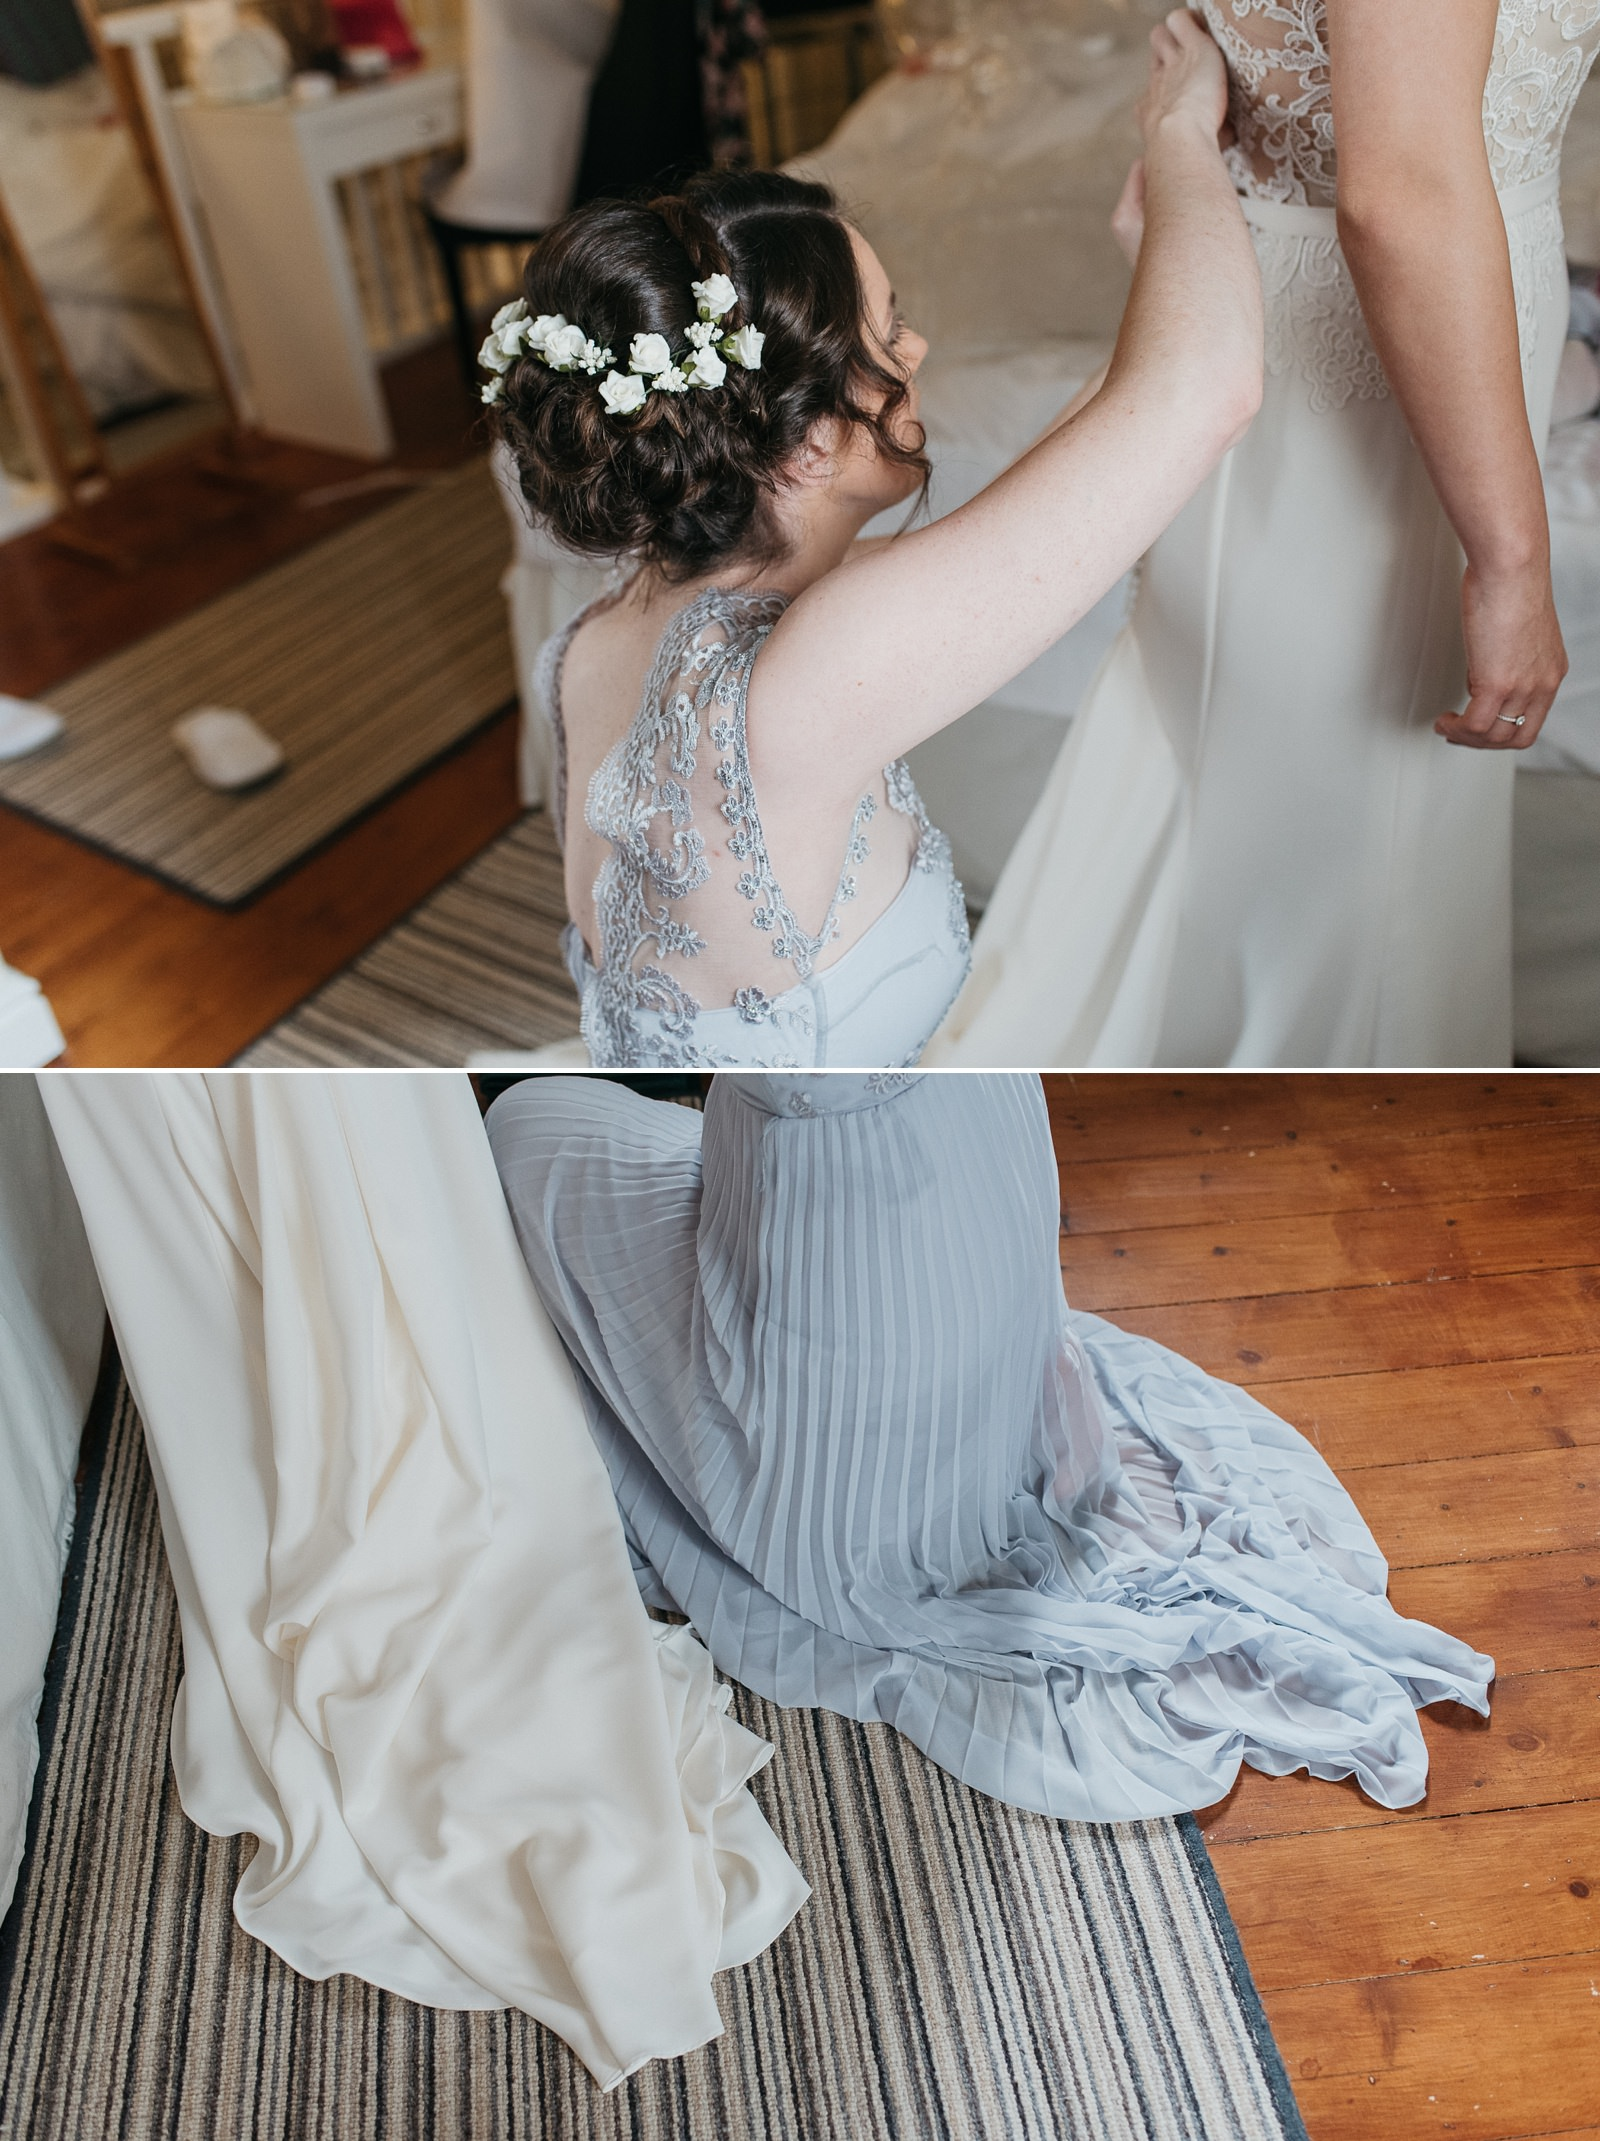 Bridesmaid helping bride into wedding dress